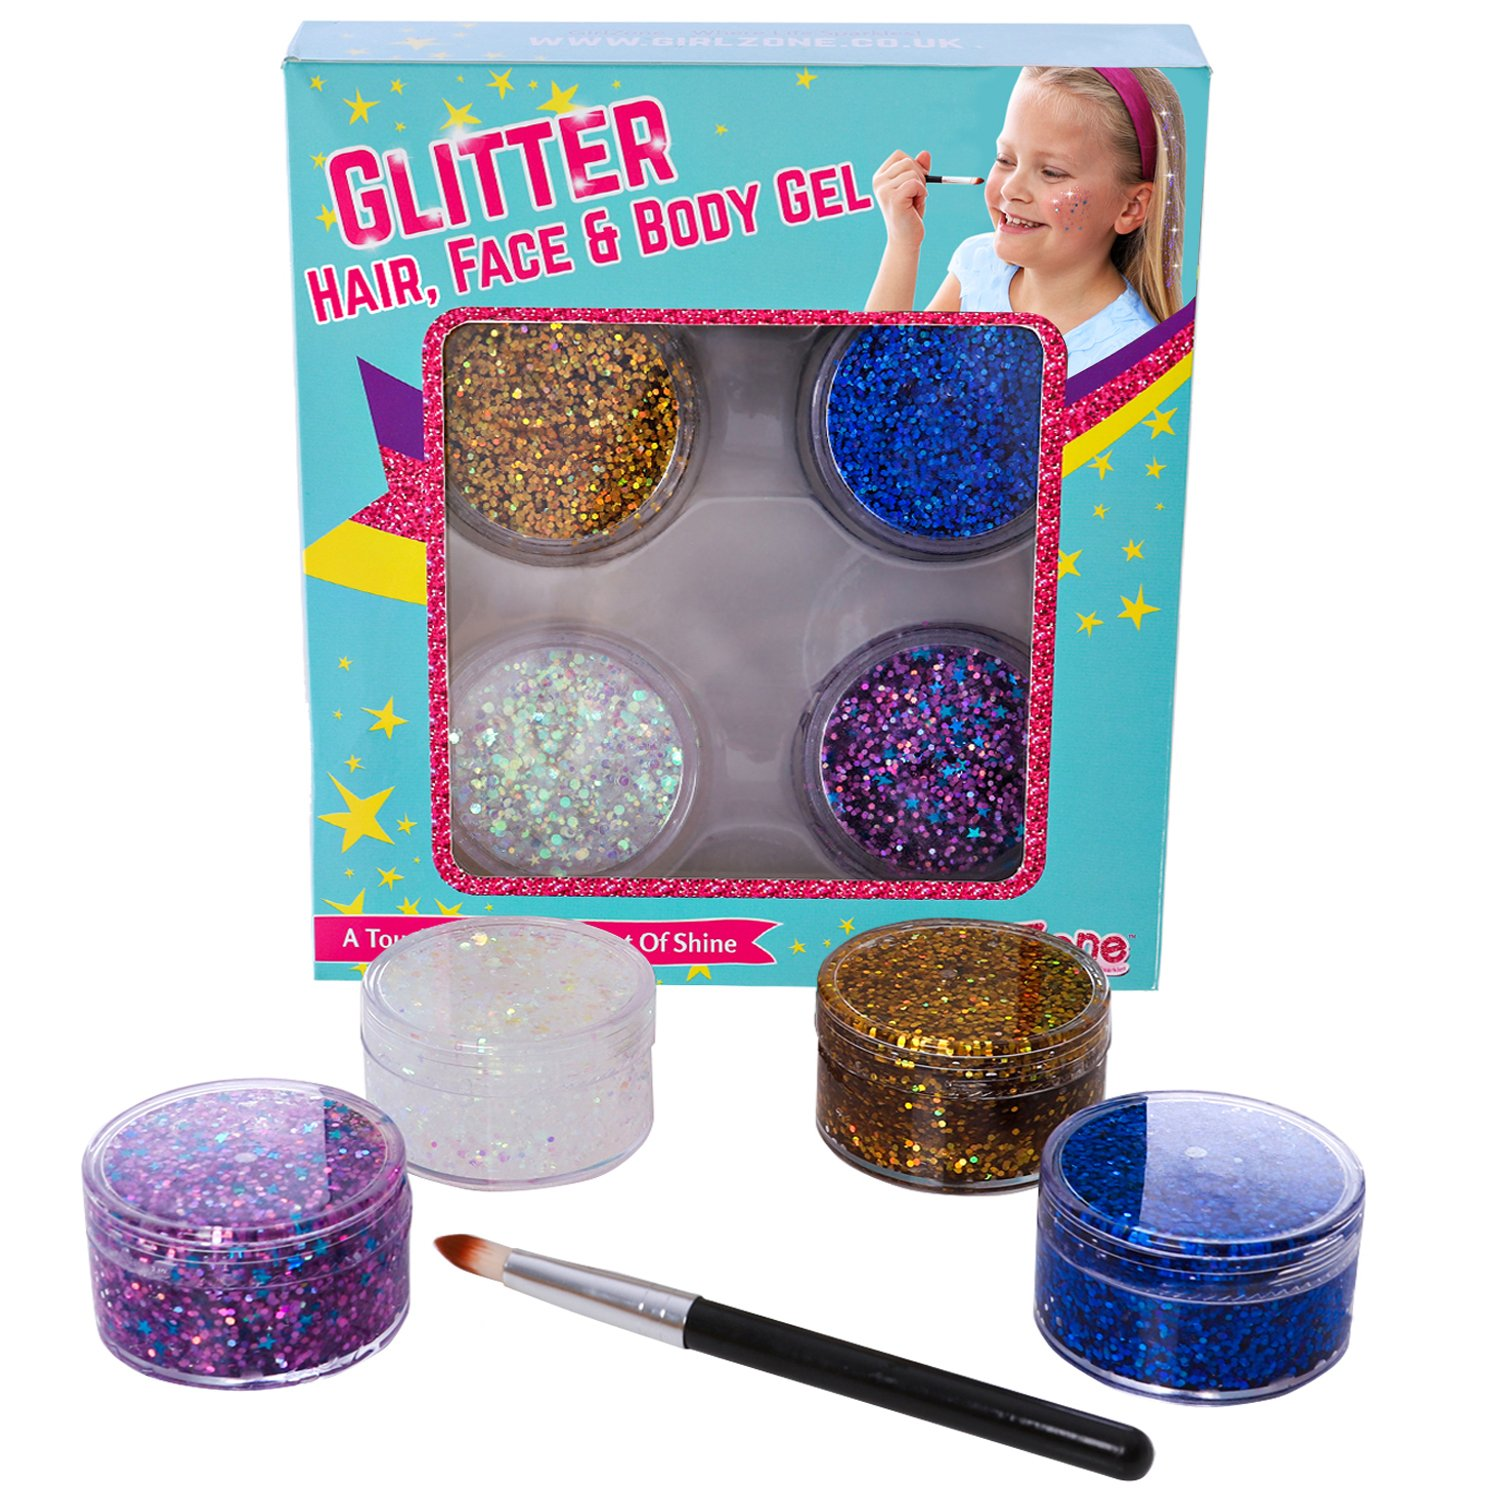 GirlZone GIFTS FOR GIRLS: Face, Hair & Body Cosmetic Glitter Makeup. Great Gift, Birthday Present Idea For Girls 4 5 6 7 8 9 10 years old plus. by GirlZone (Image #3)